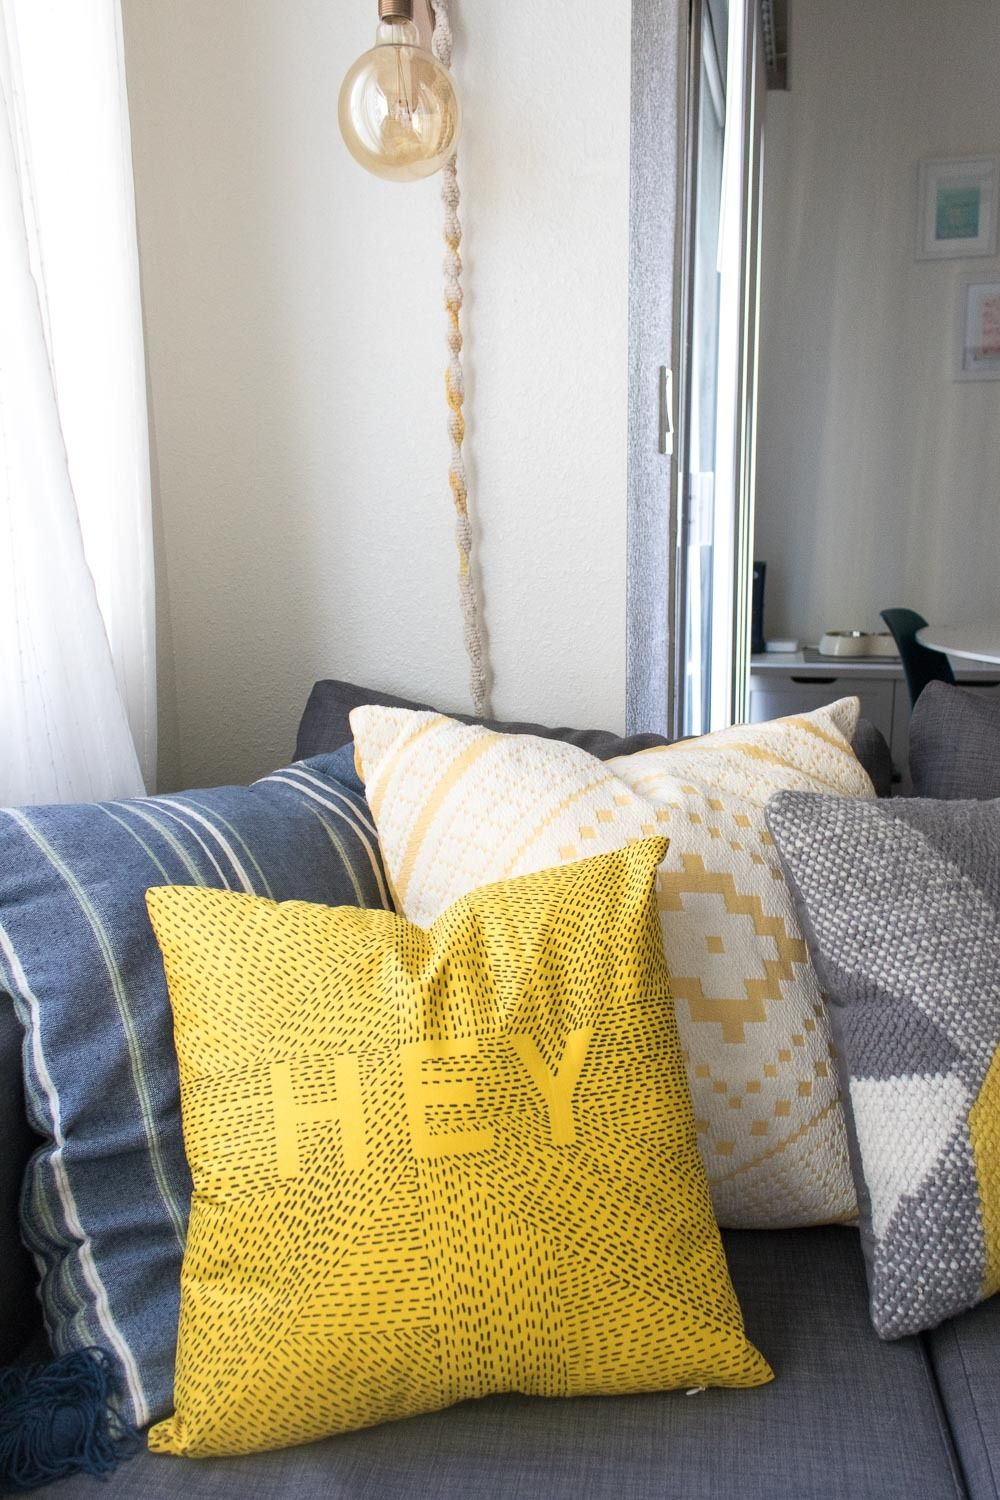 How to Update a Throw Pillow Using Only a Marker